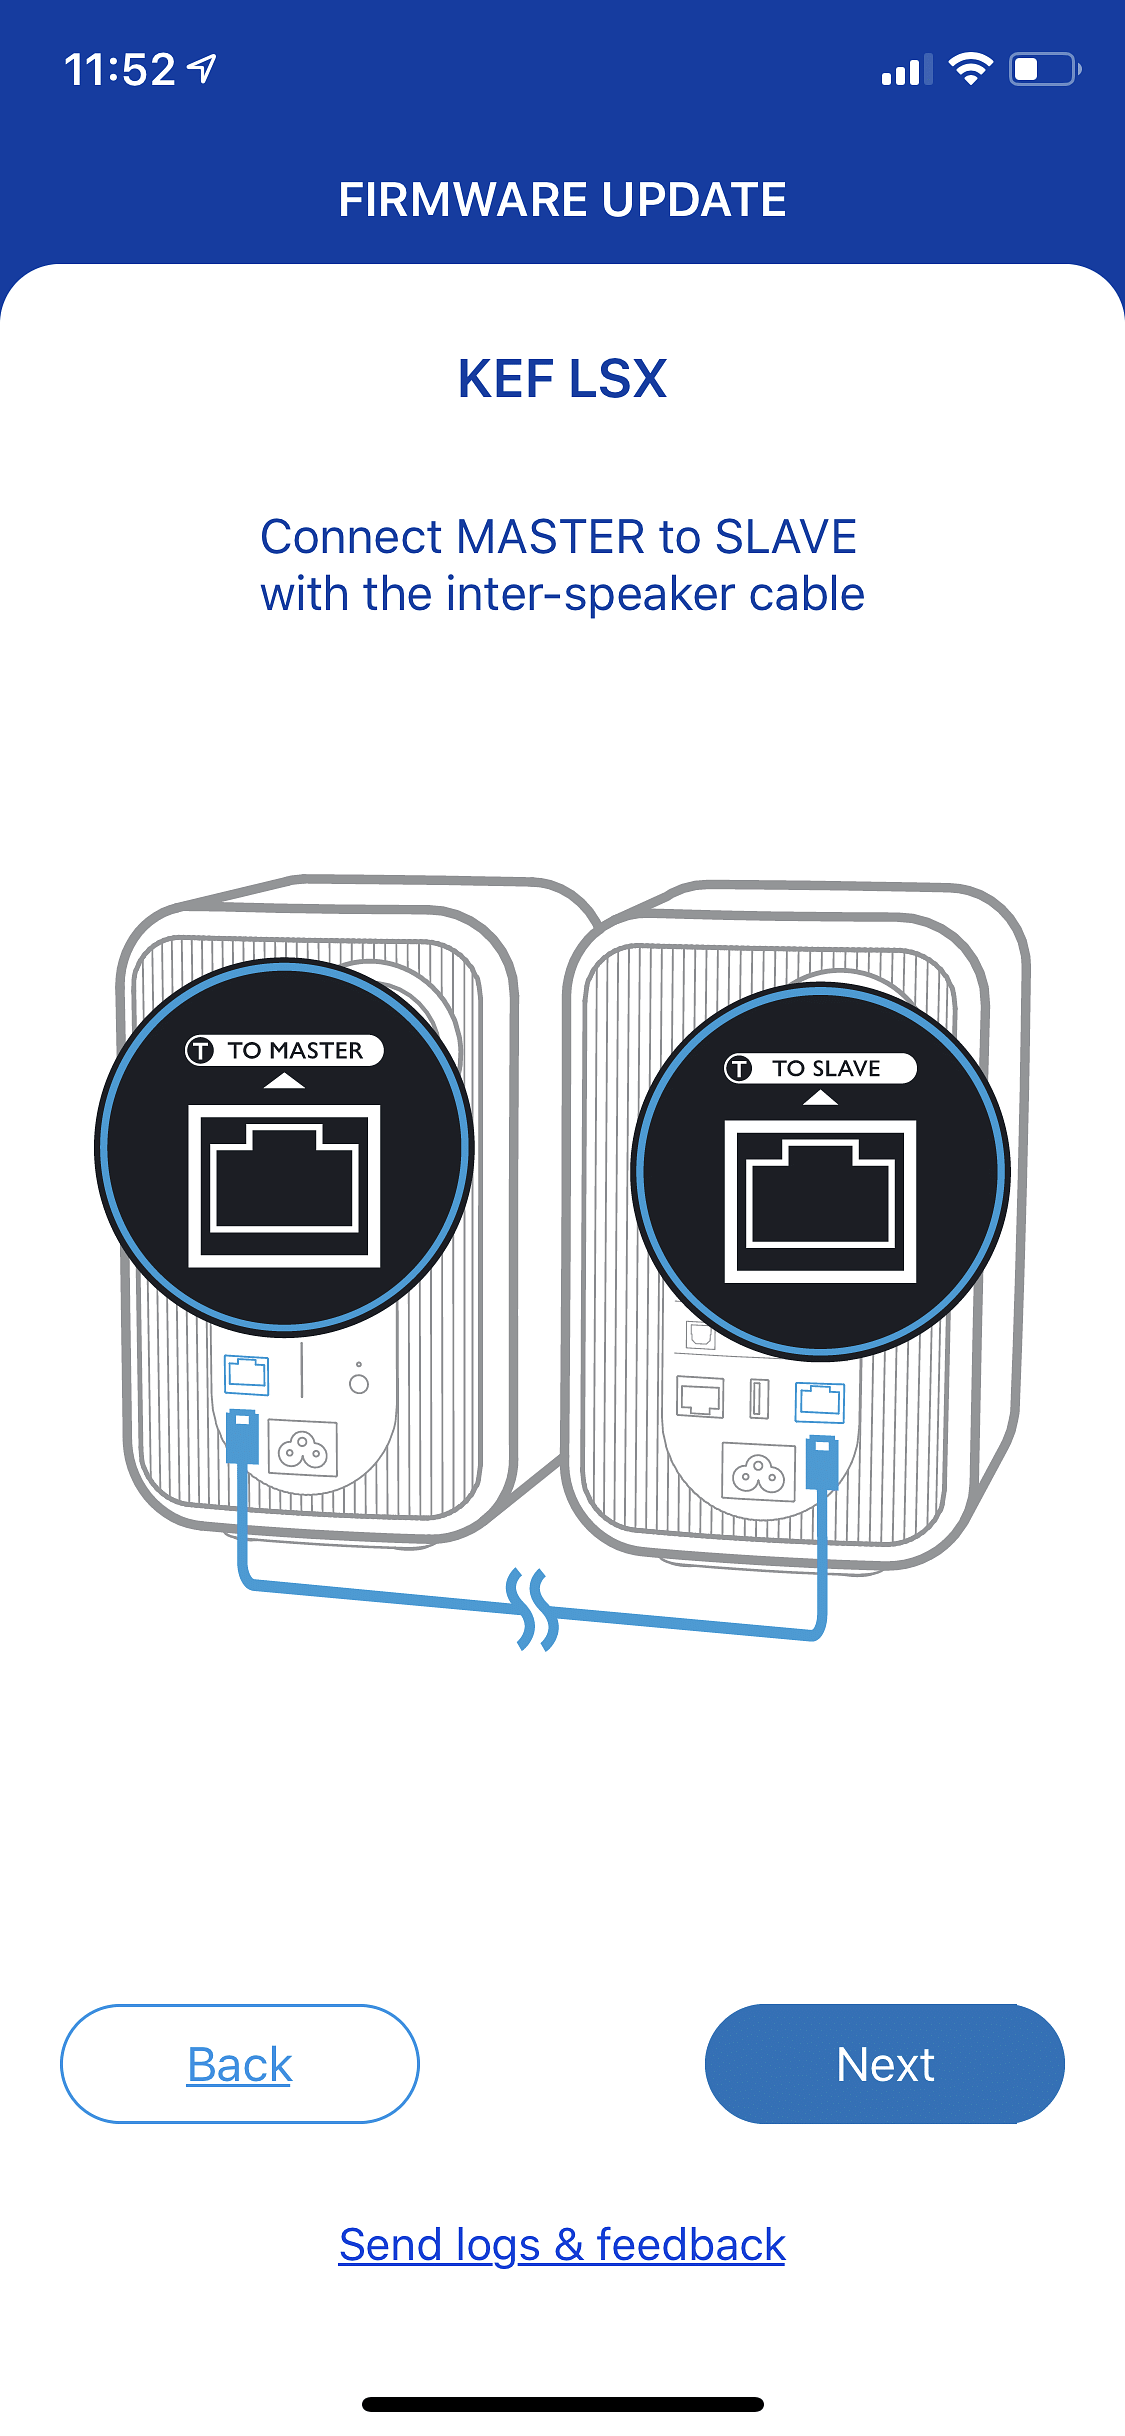 Users need to download two separate apps to operate the LSX speakers from KEF.